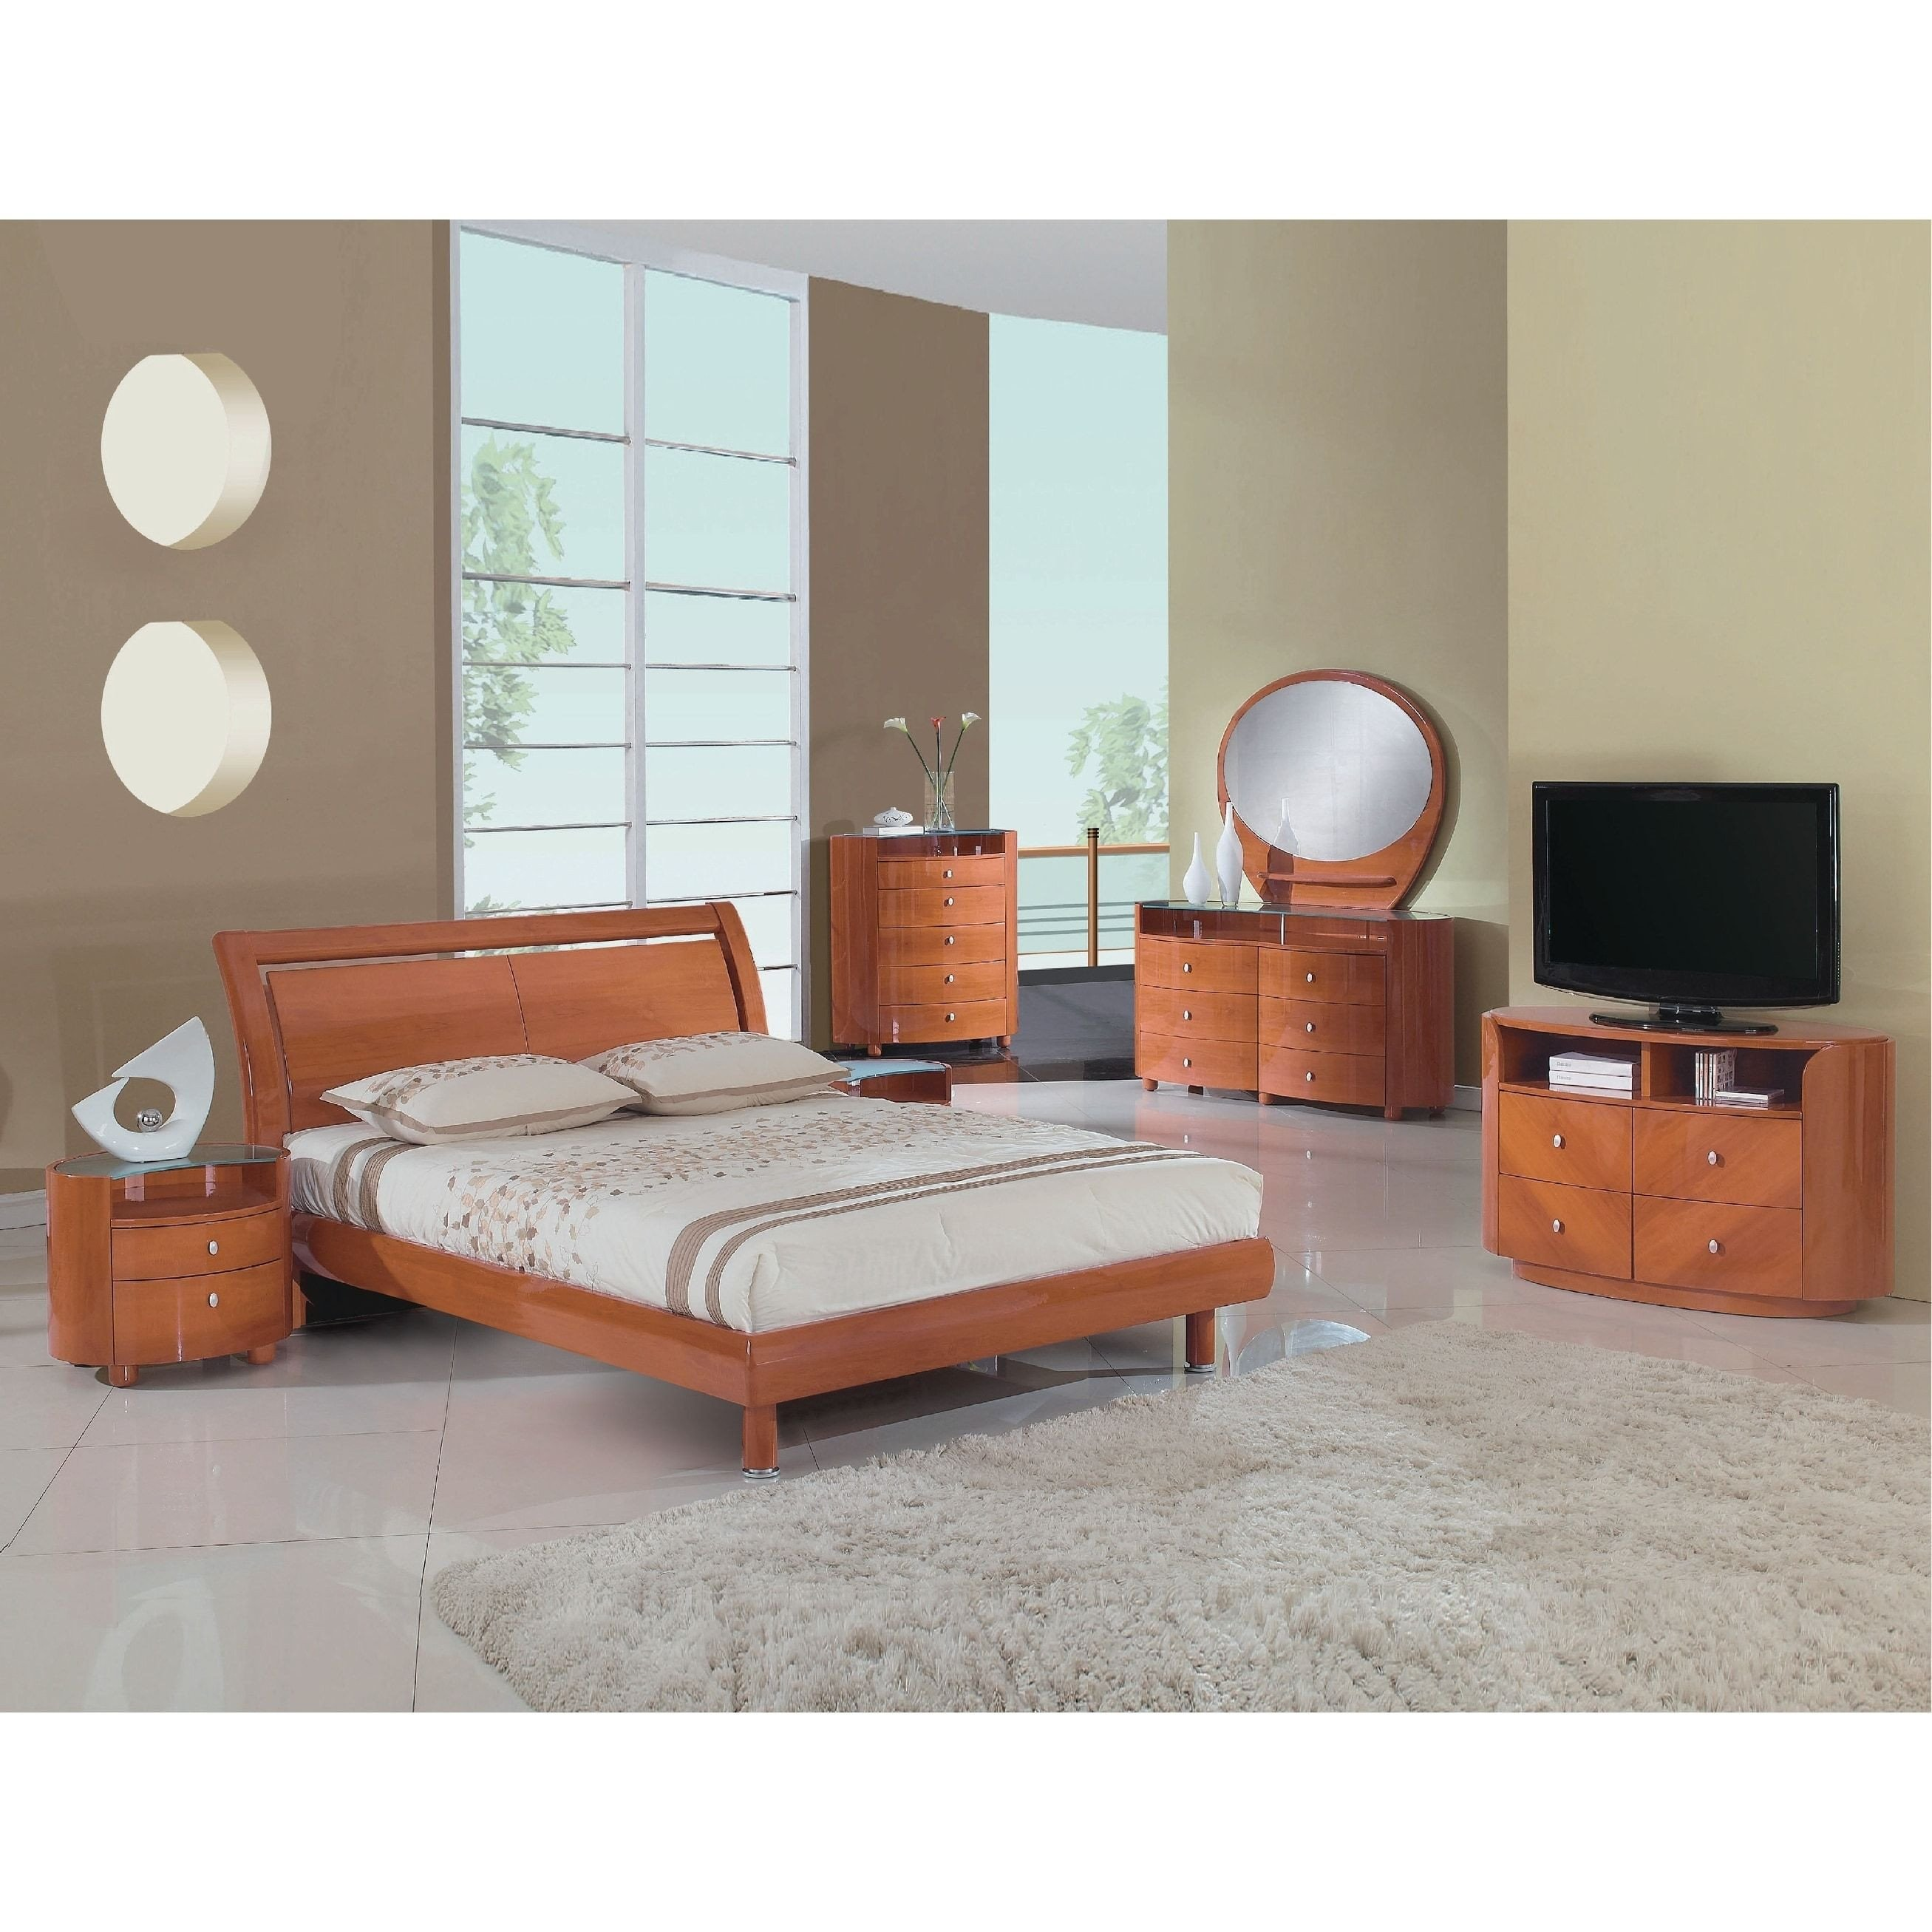 Low Price Bedroom Set Inspirational Line Shopping Bedding Furniture Electronics Jewelry